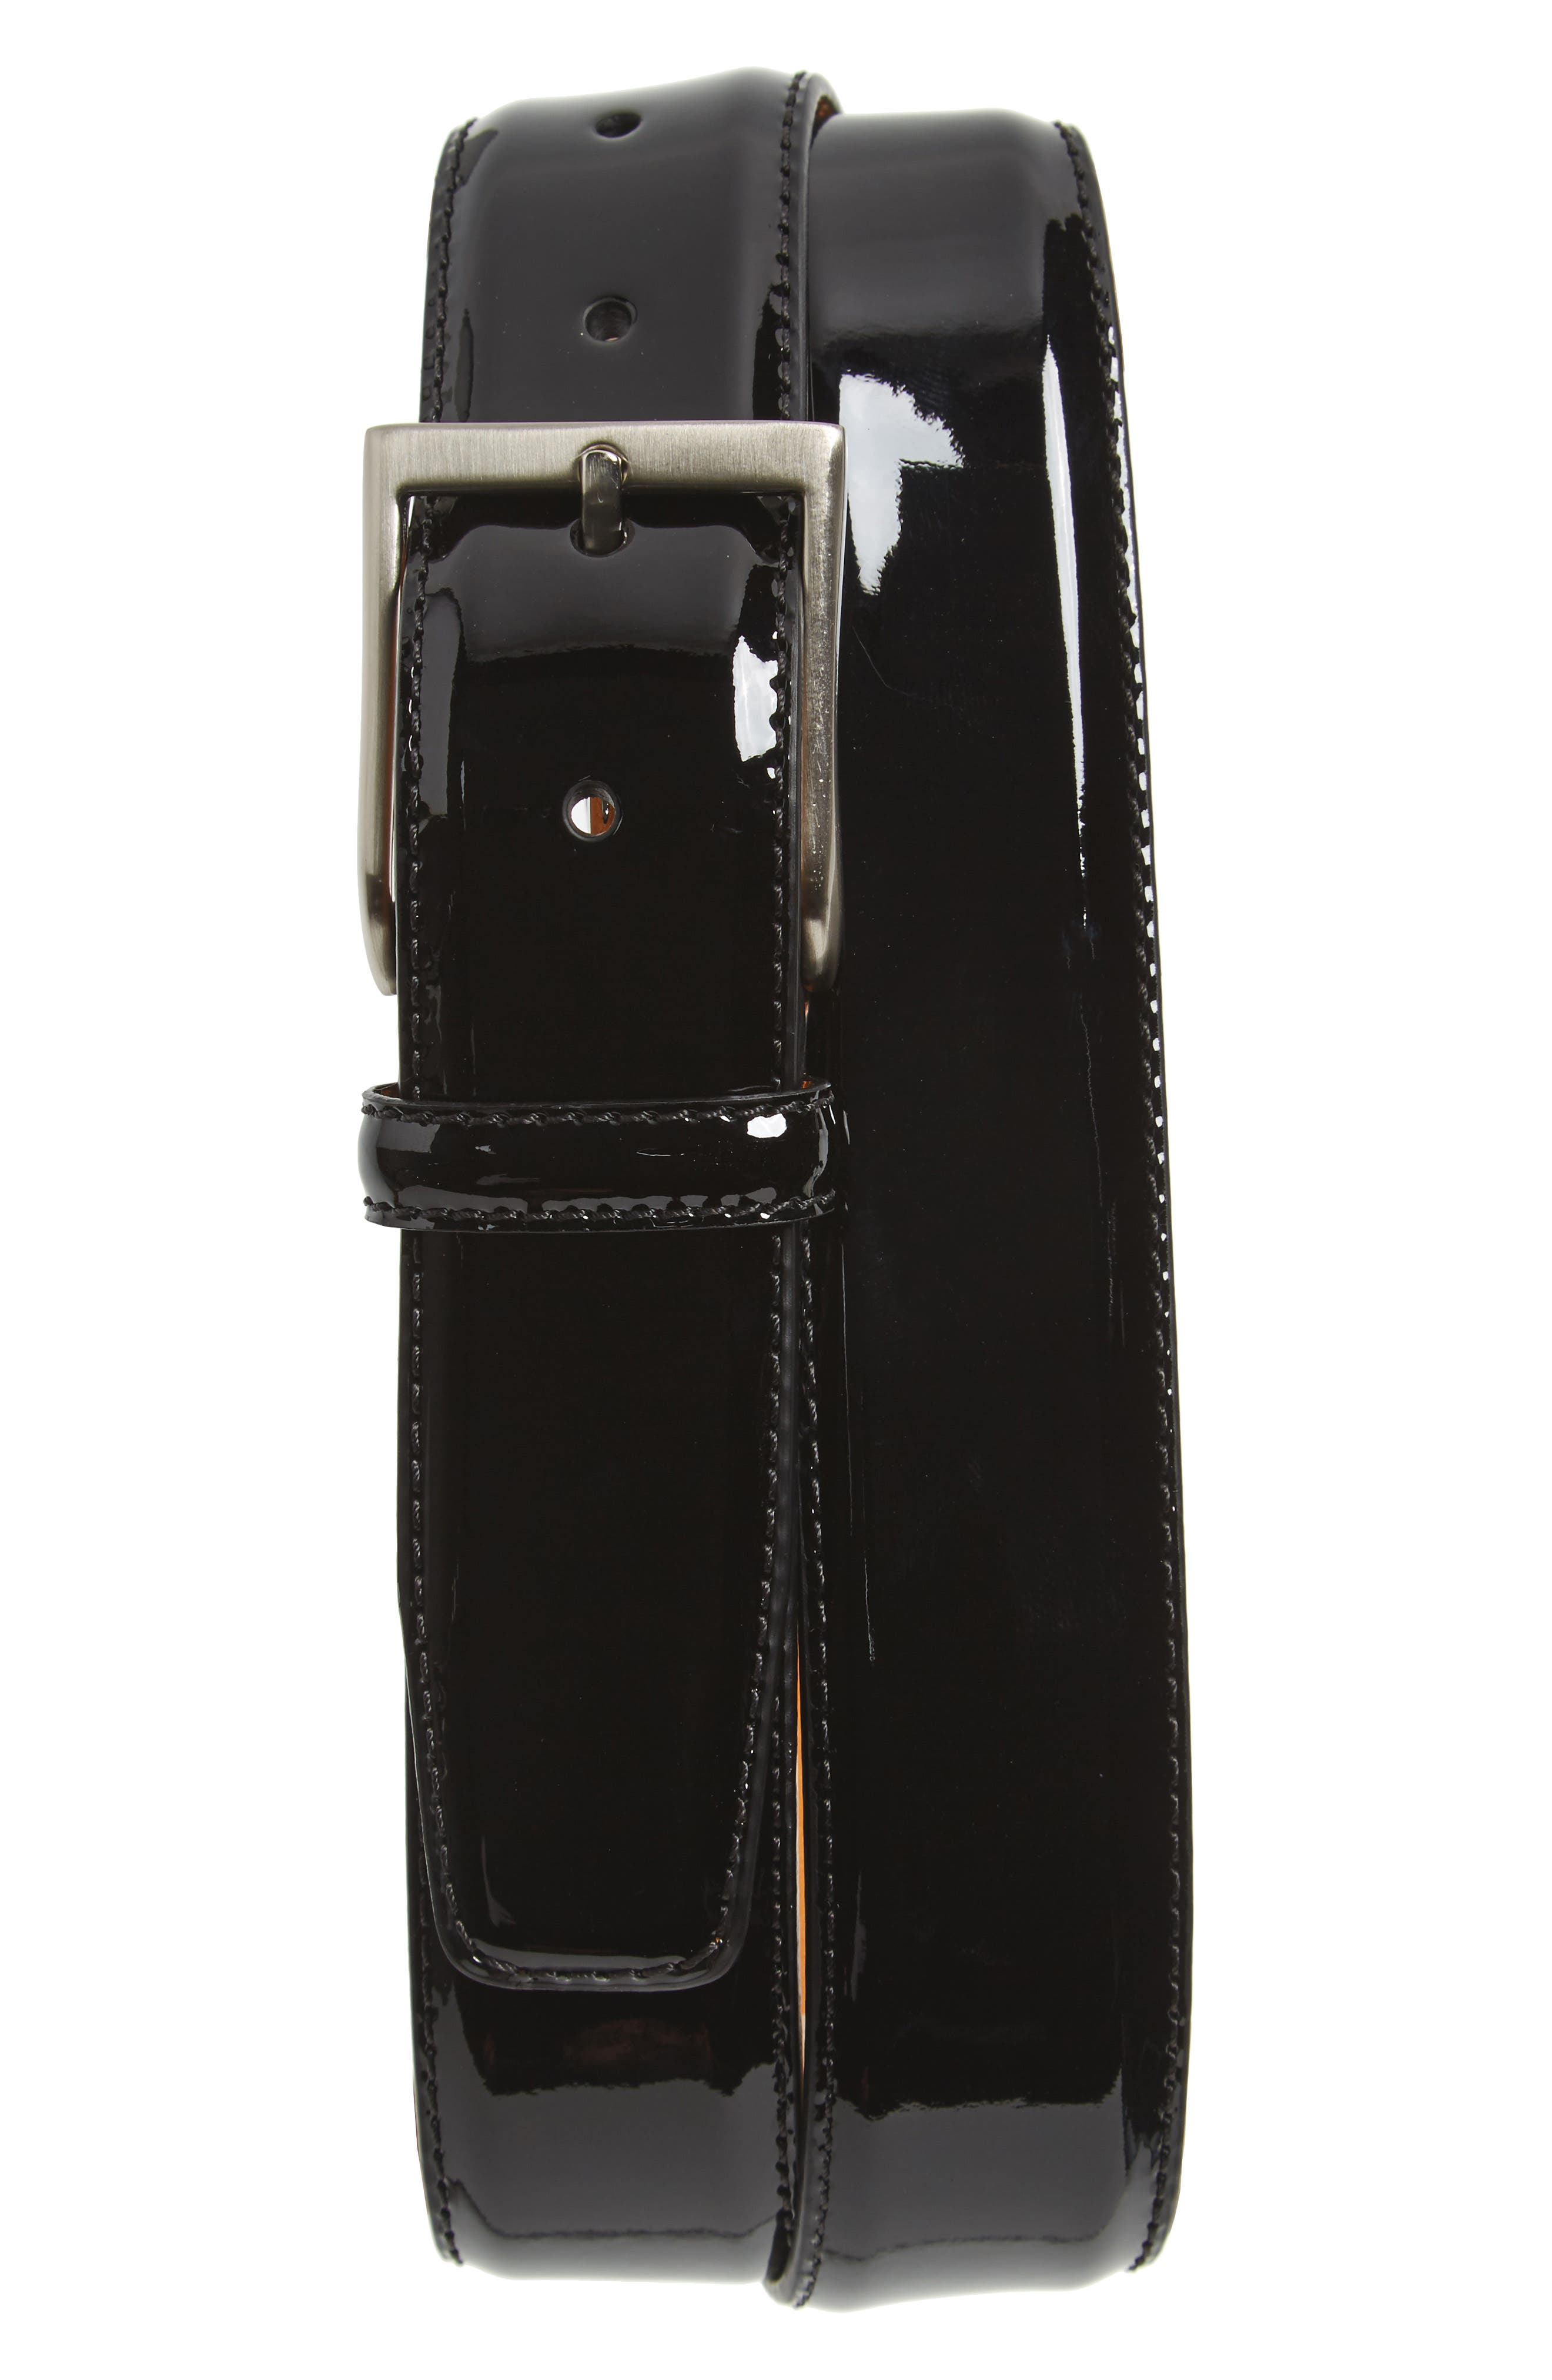 Glossy patent calfskin leather elevates a versatile, Spanish-made belt secured with handsome brushed-metal hardware. Style Name: Magnanni Patent Leather Belt. Style Number: 5368192. Available in stores.